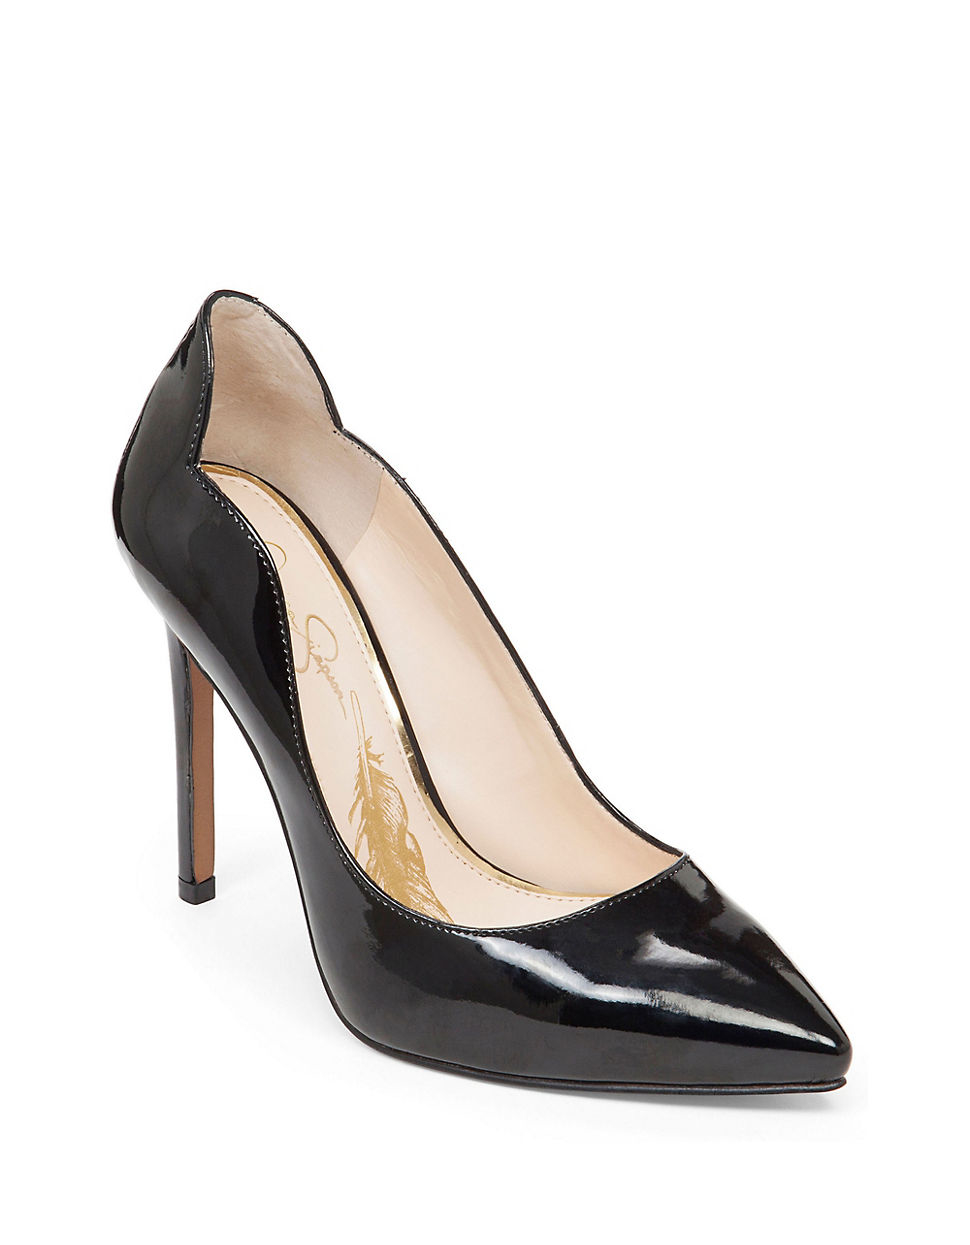 jessica simpson pixy patent pumps in black lyst. Black Bedroom Furniture Sets. Home Design Ideas